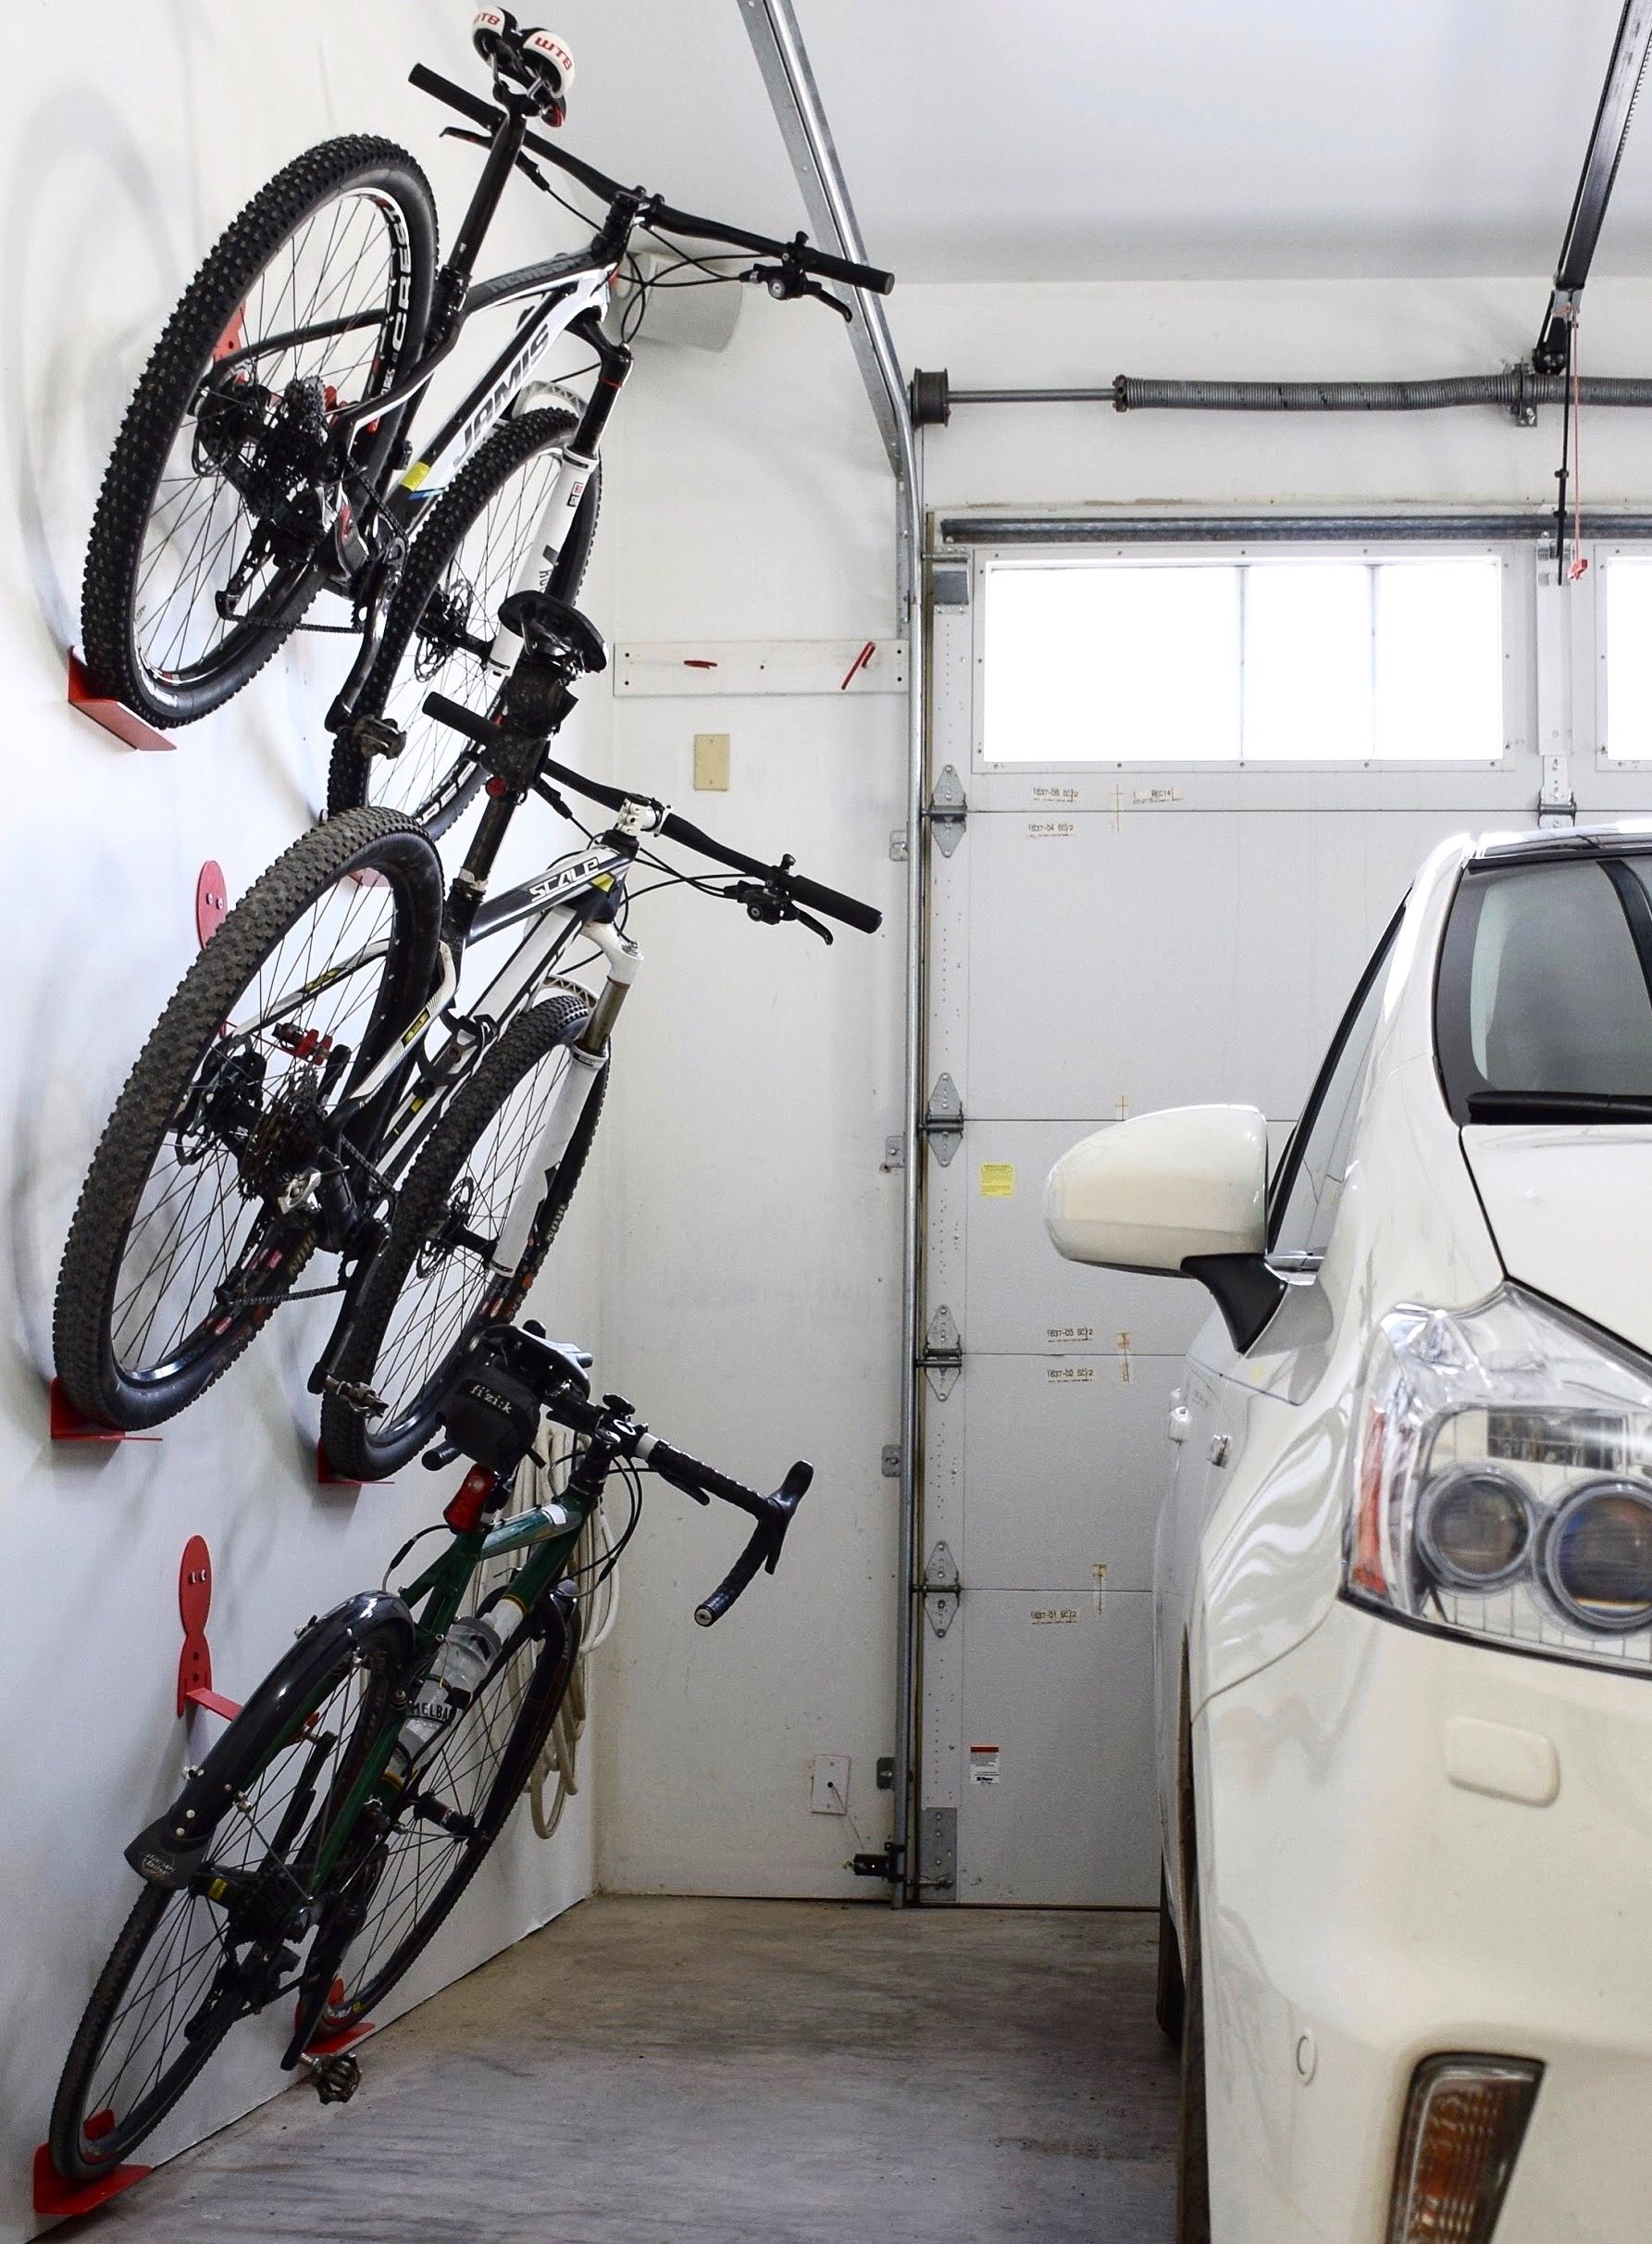 bike howling for diverting bikes space solutions upright at hanger rack outdoor in wall uk hang way piquant stand garage storage hanging to mount road bicycle with saving snazzy along ceiling